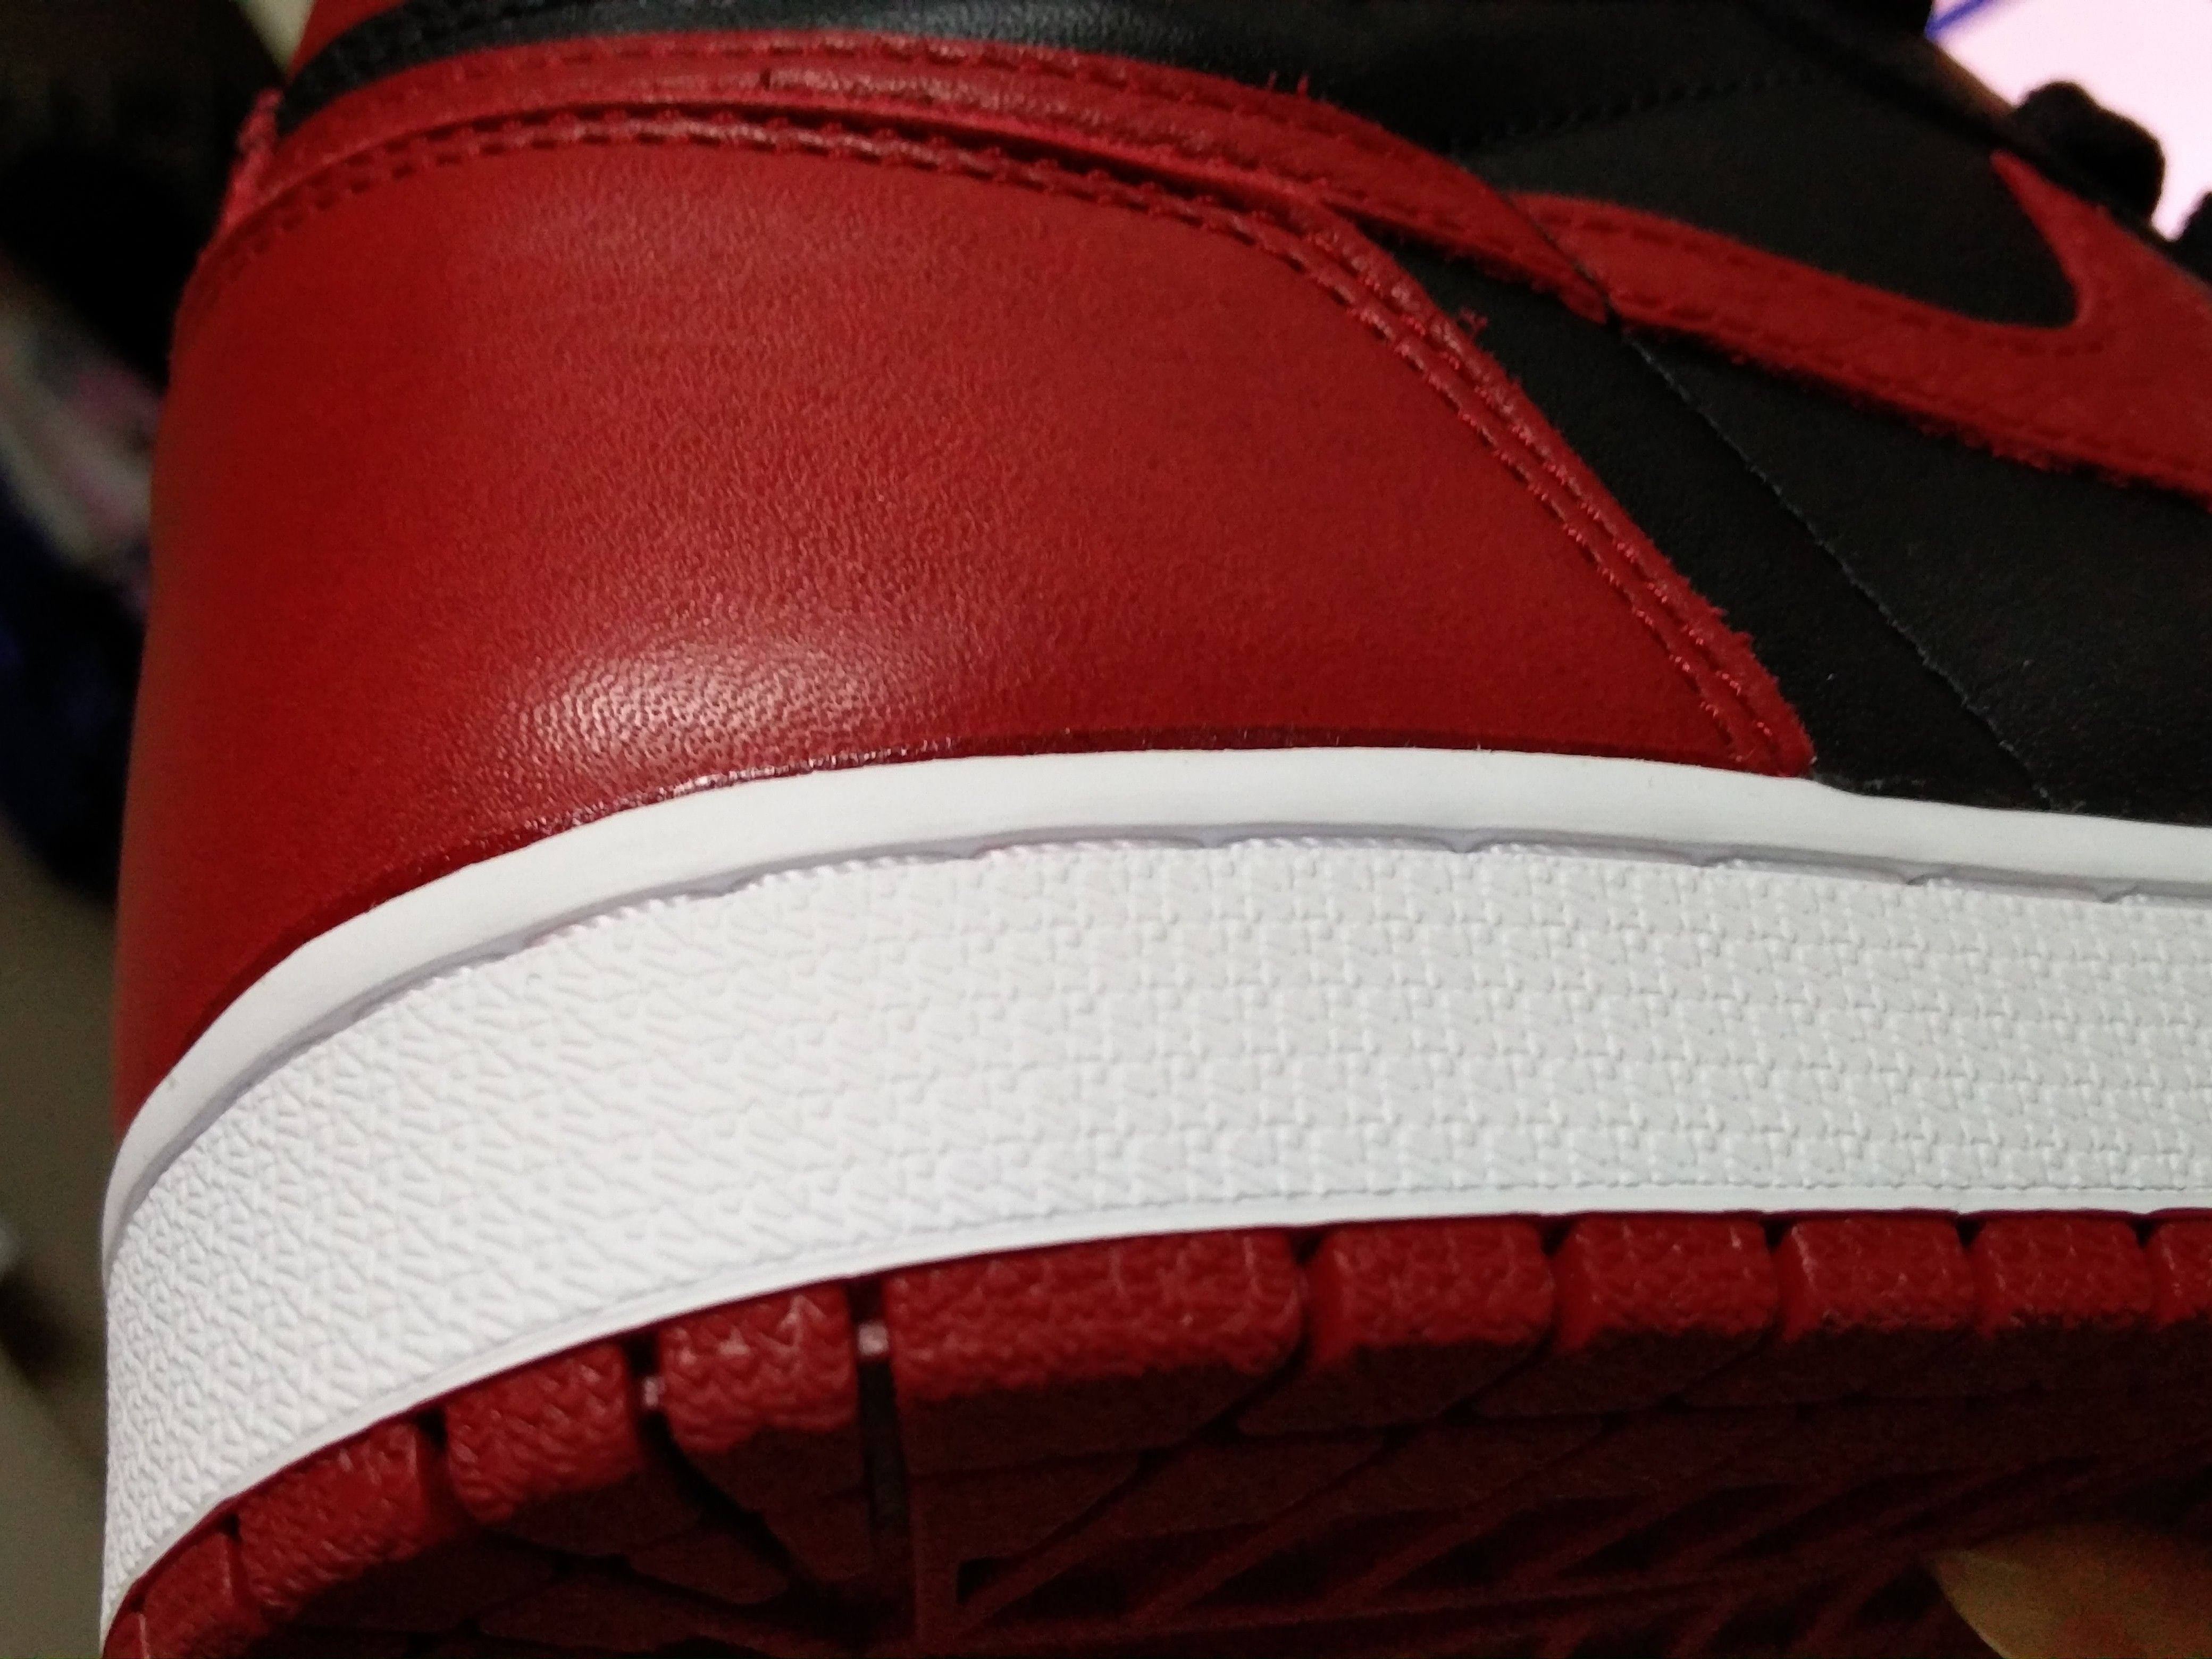 How To Remove Glue Stains From Jordan 1 Bred 2016 Nike Sneakers